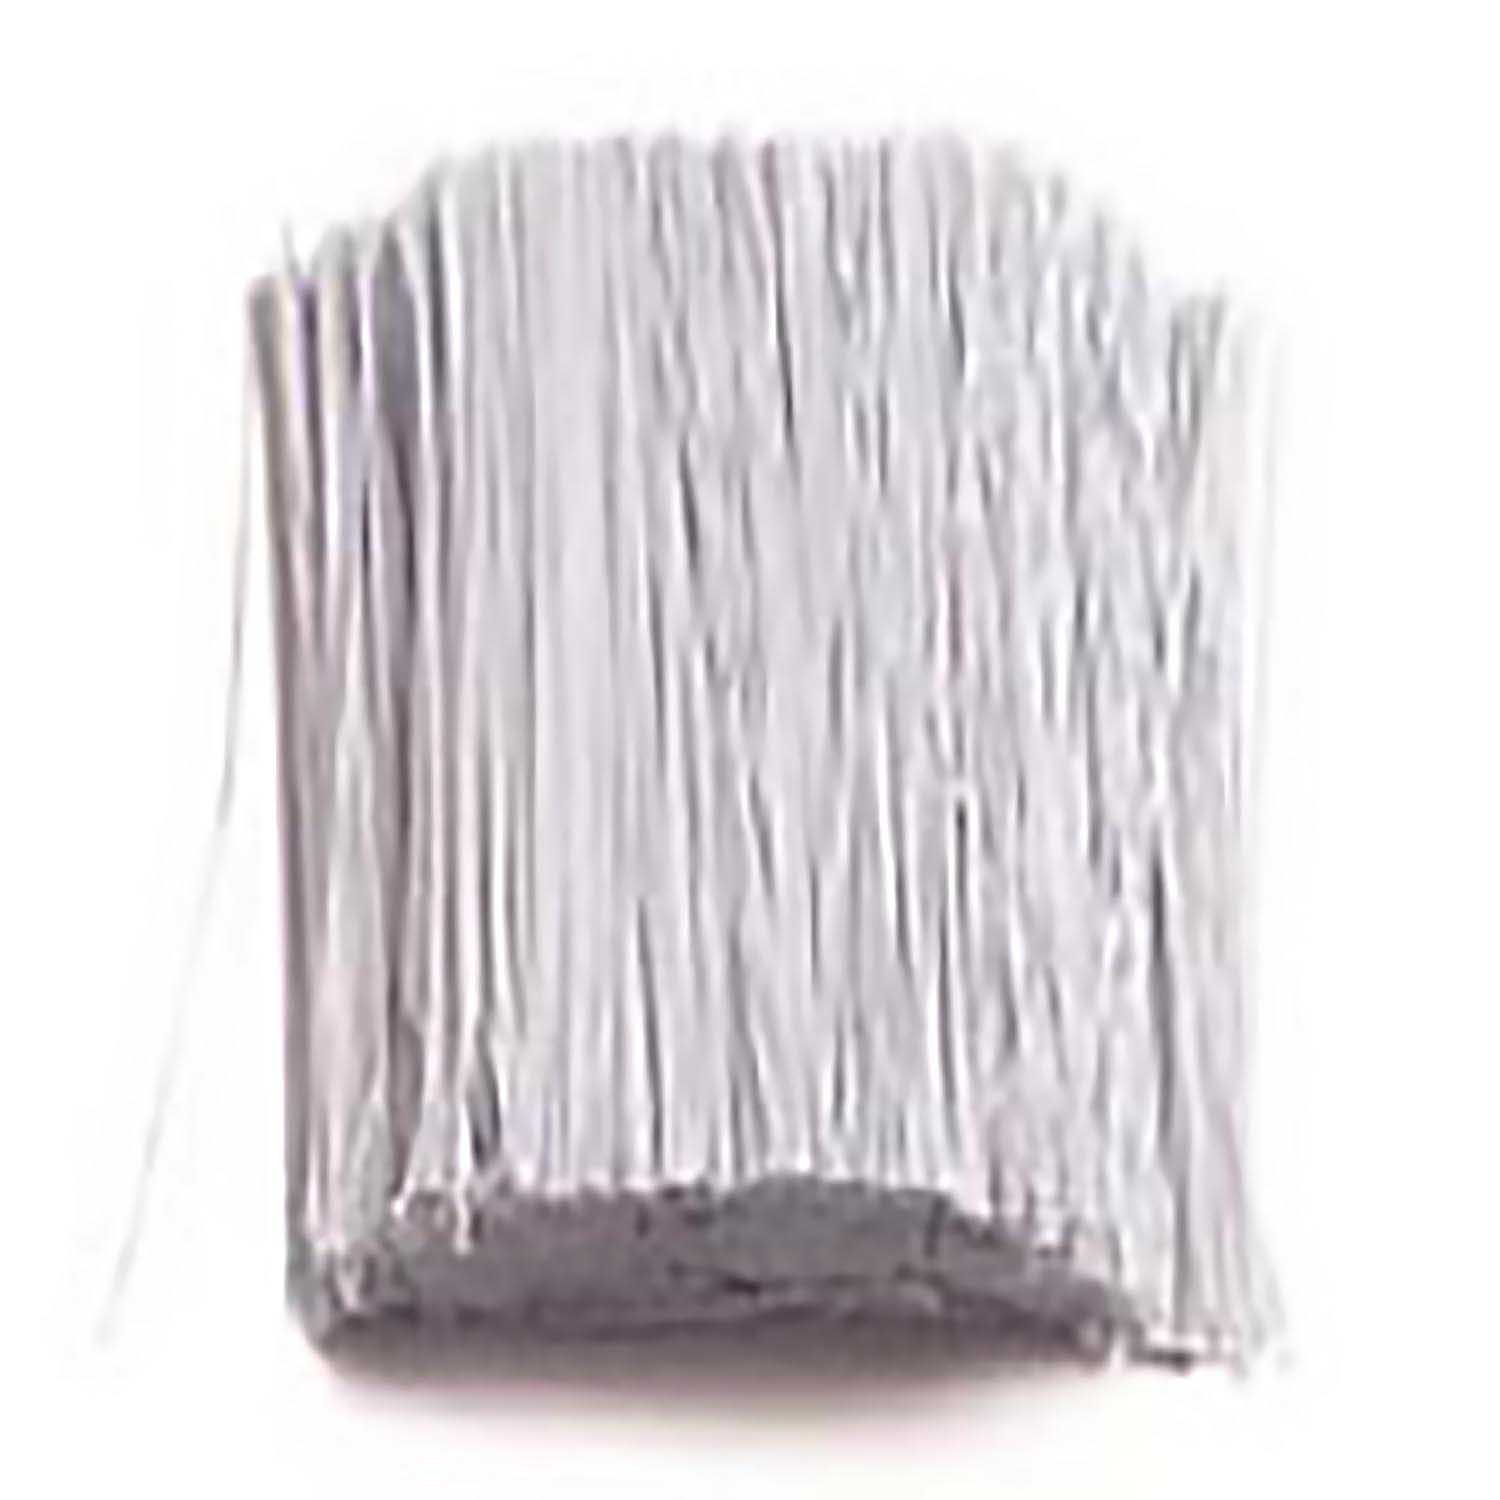 "24 Gauge White 6"" Covered Wire"